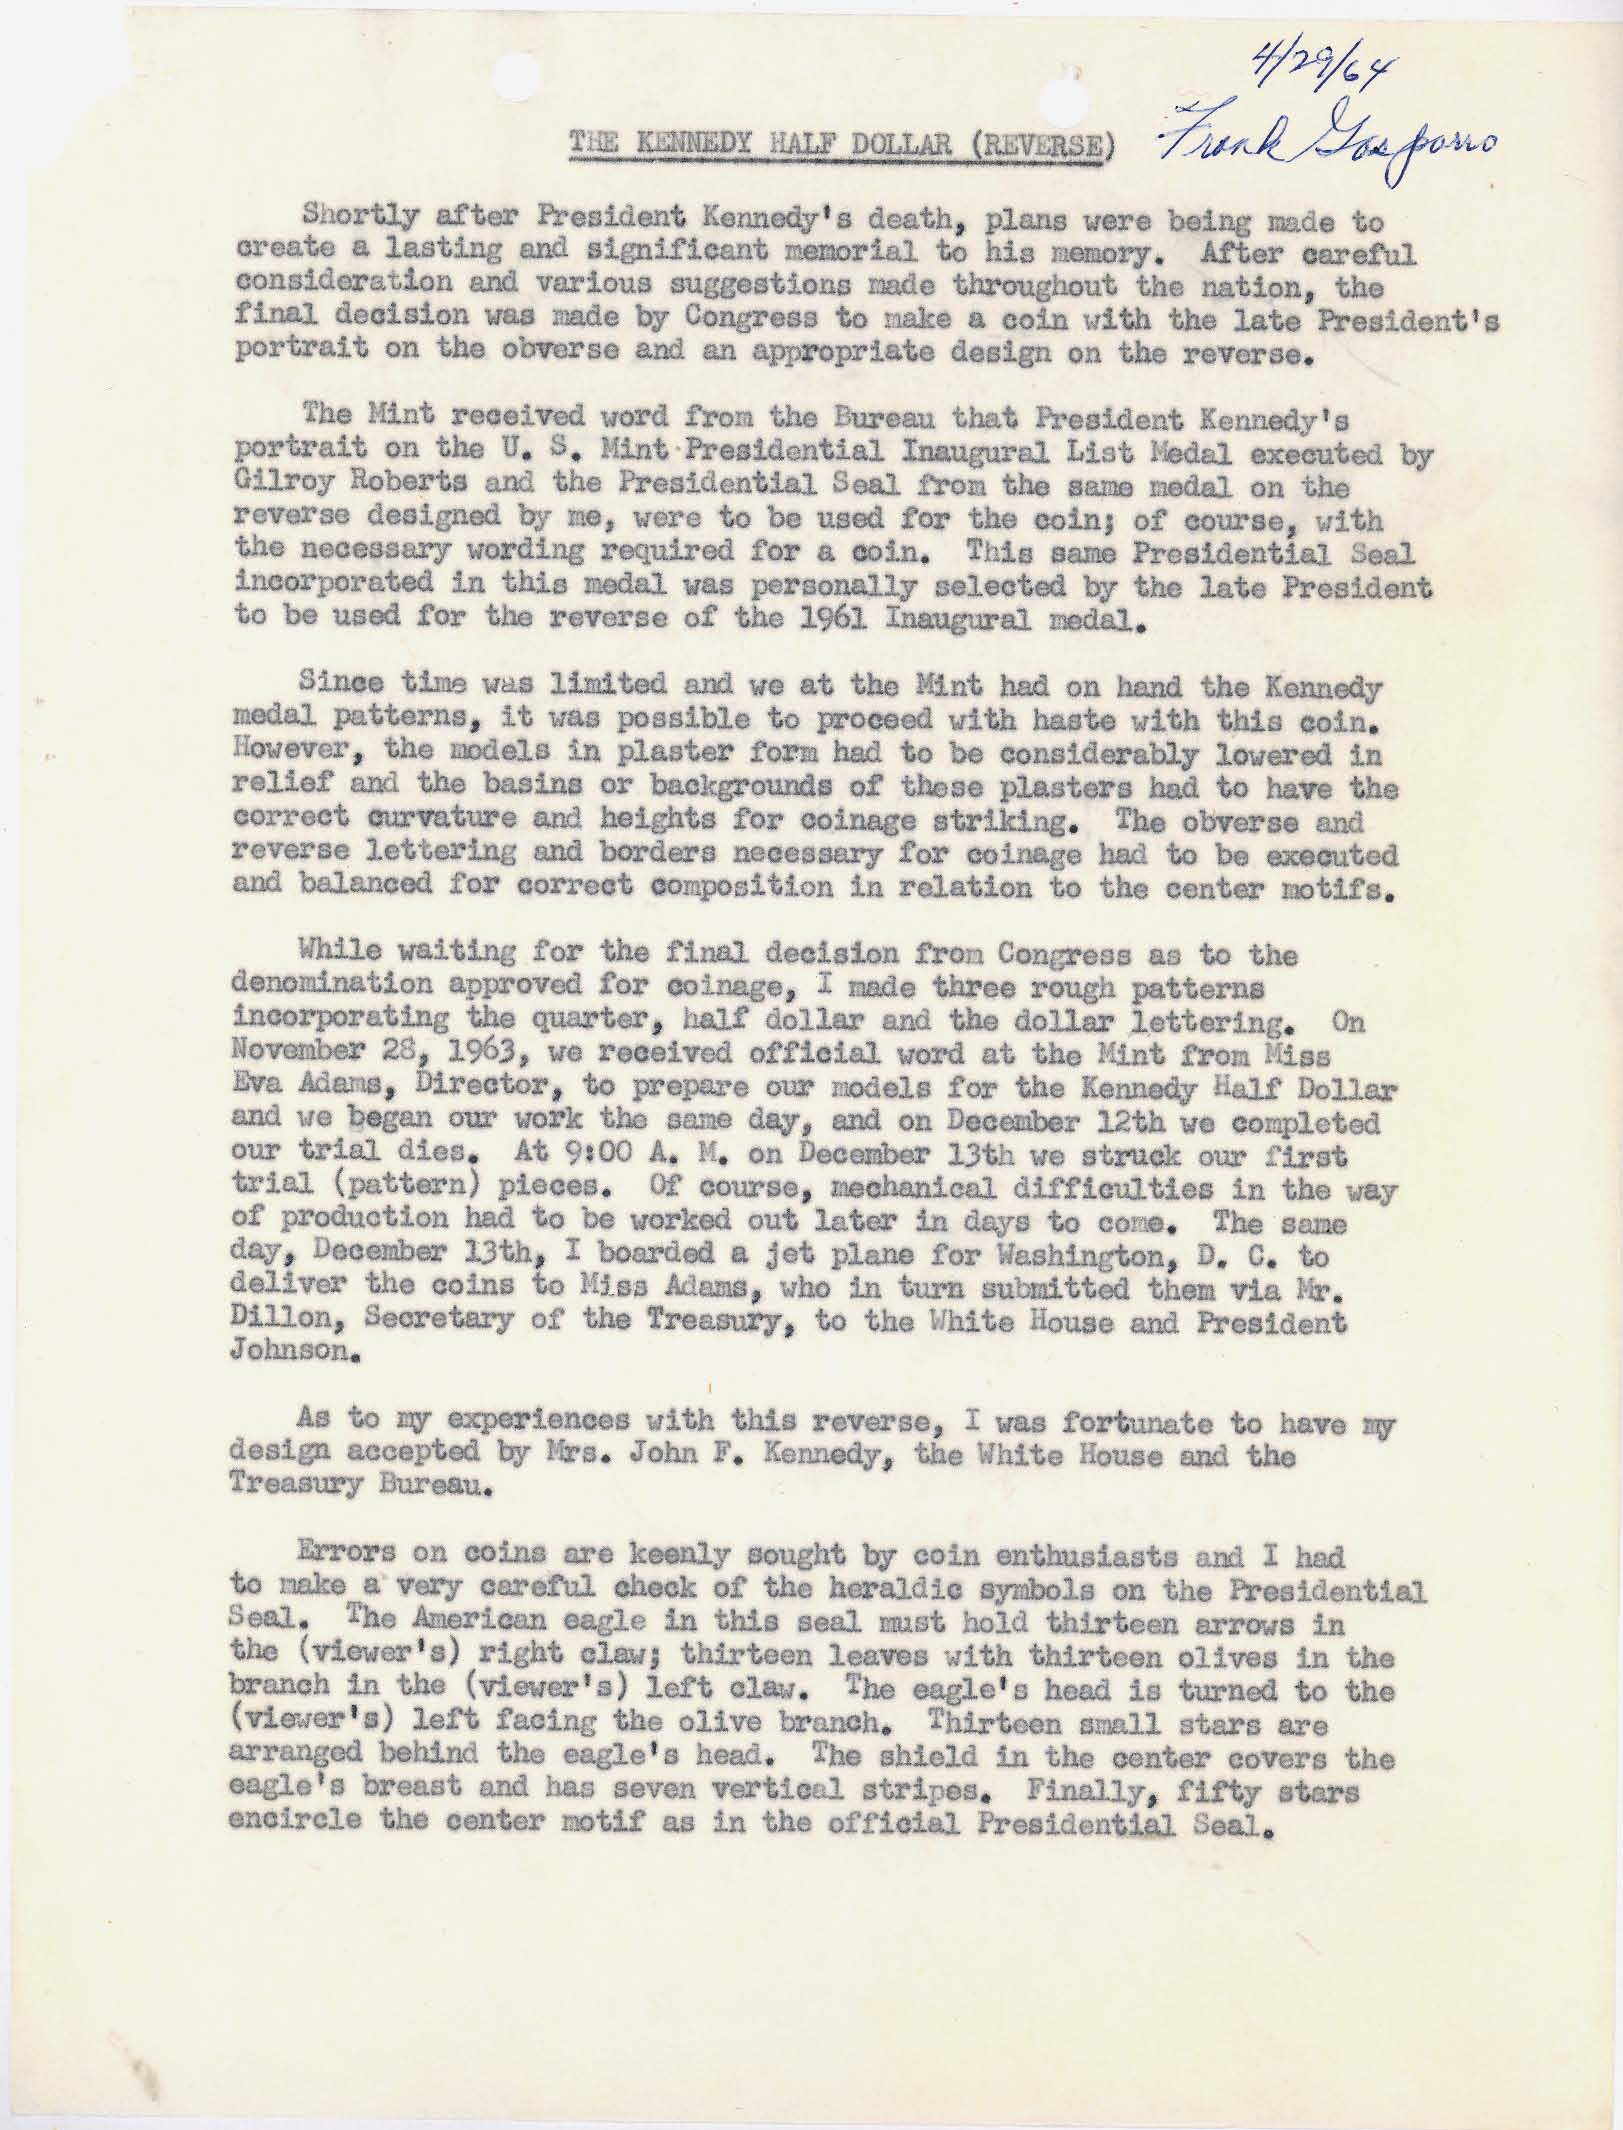 Letter to Director Adams: Kennedy Half Dollar Production, Page 5